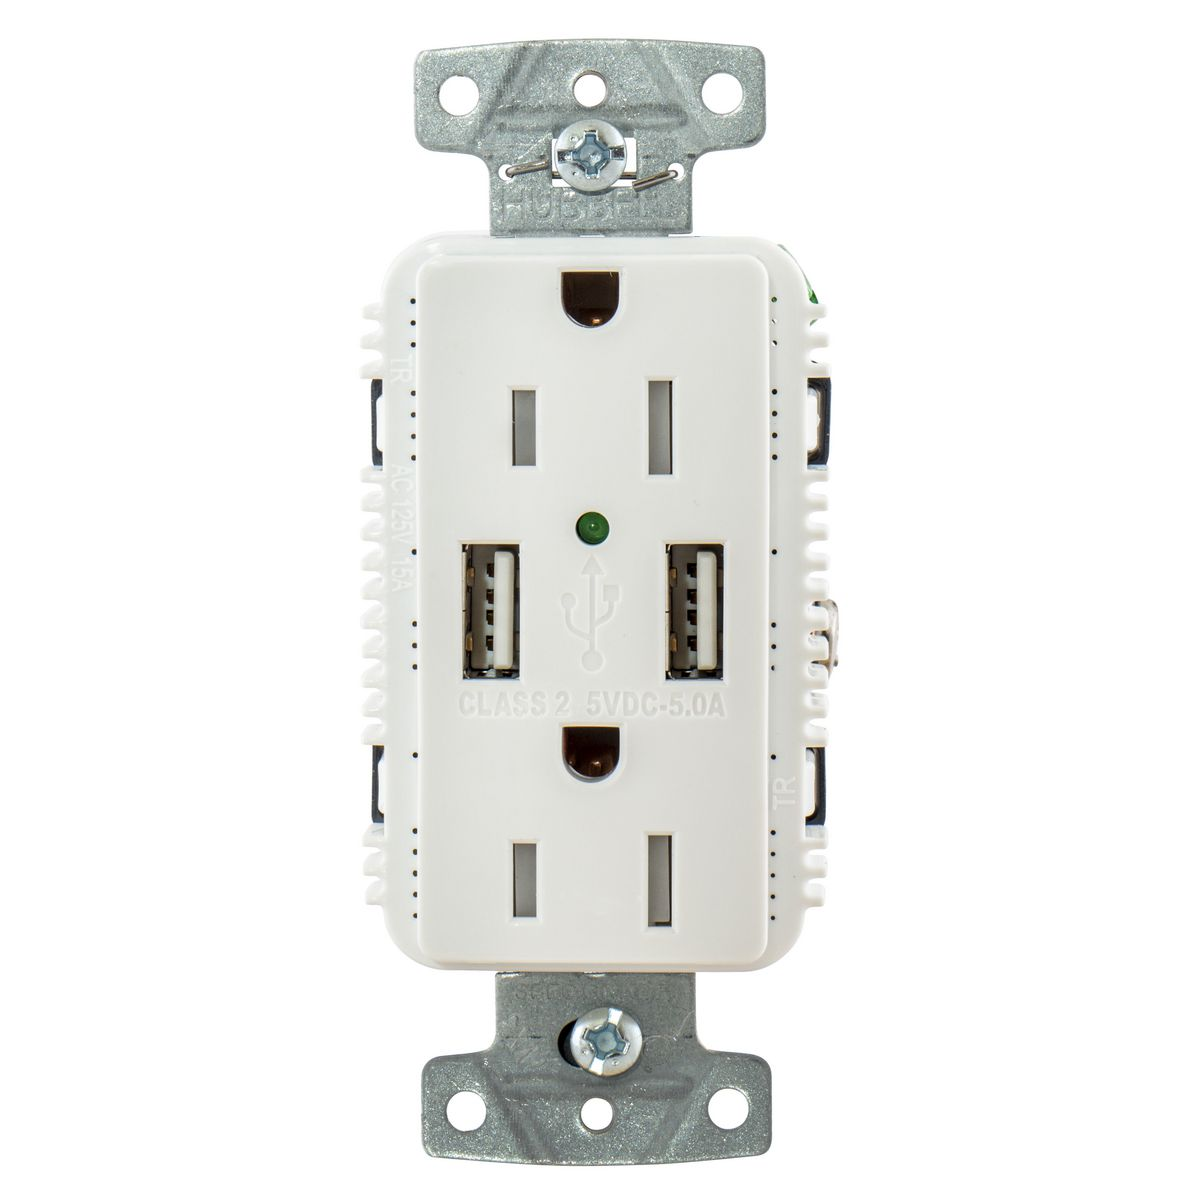 15A High Power 5A USB 2 Port Charging Outlet TR Plugs White